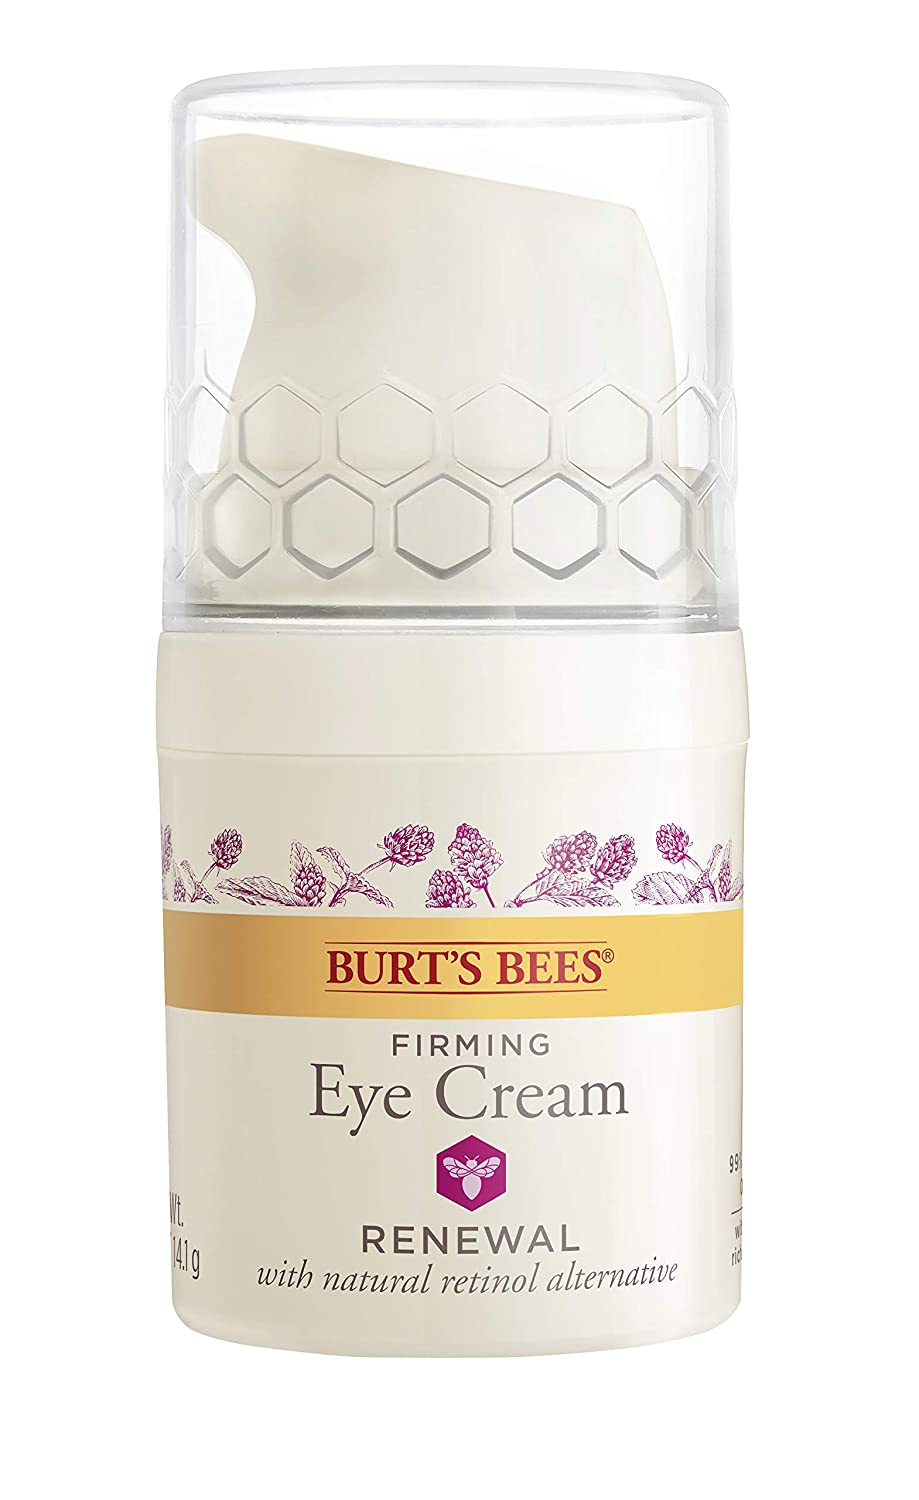 Burt's Bees Renewal Night Cream